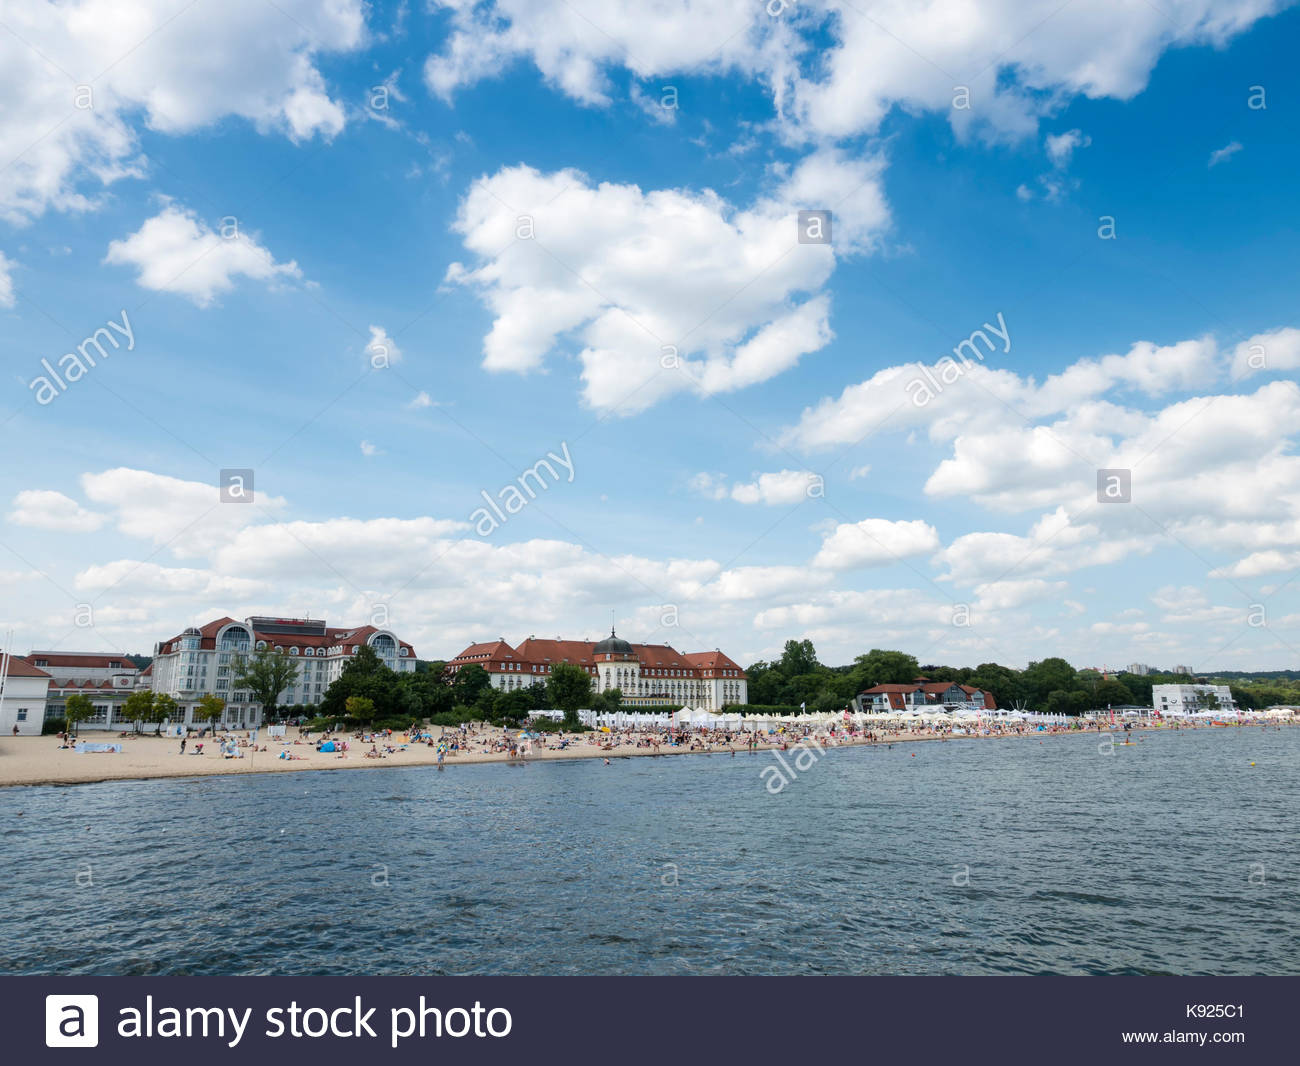 Fontanna Neptuna The Baltic Coast and Pomerania, Grand Sopot Stock Photos & Grand Sopot Stock Images - Alamy